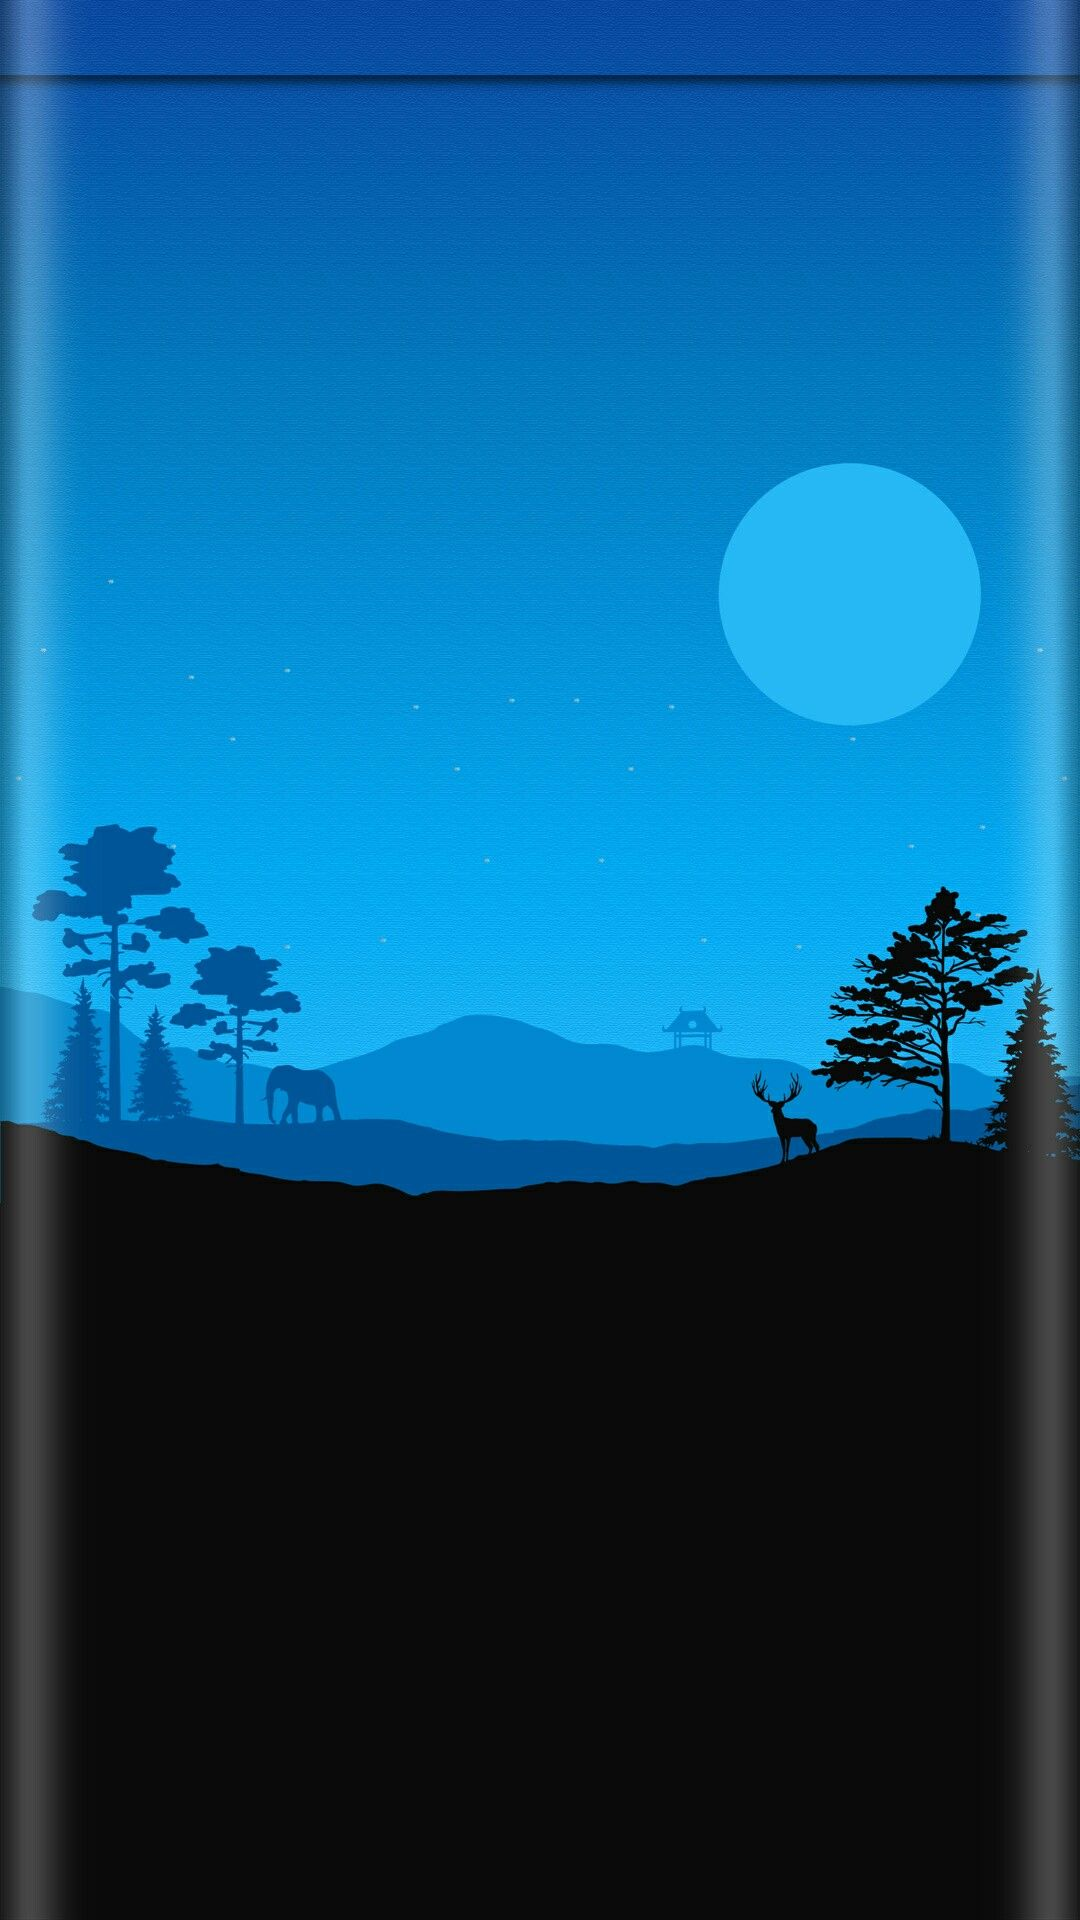 Samsung Iphone Edge Phonetelefon 3d Wallpaper Beautiful Nature Wallpaper S8 Wallpaper Galaxy S8 Wallpaper